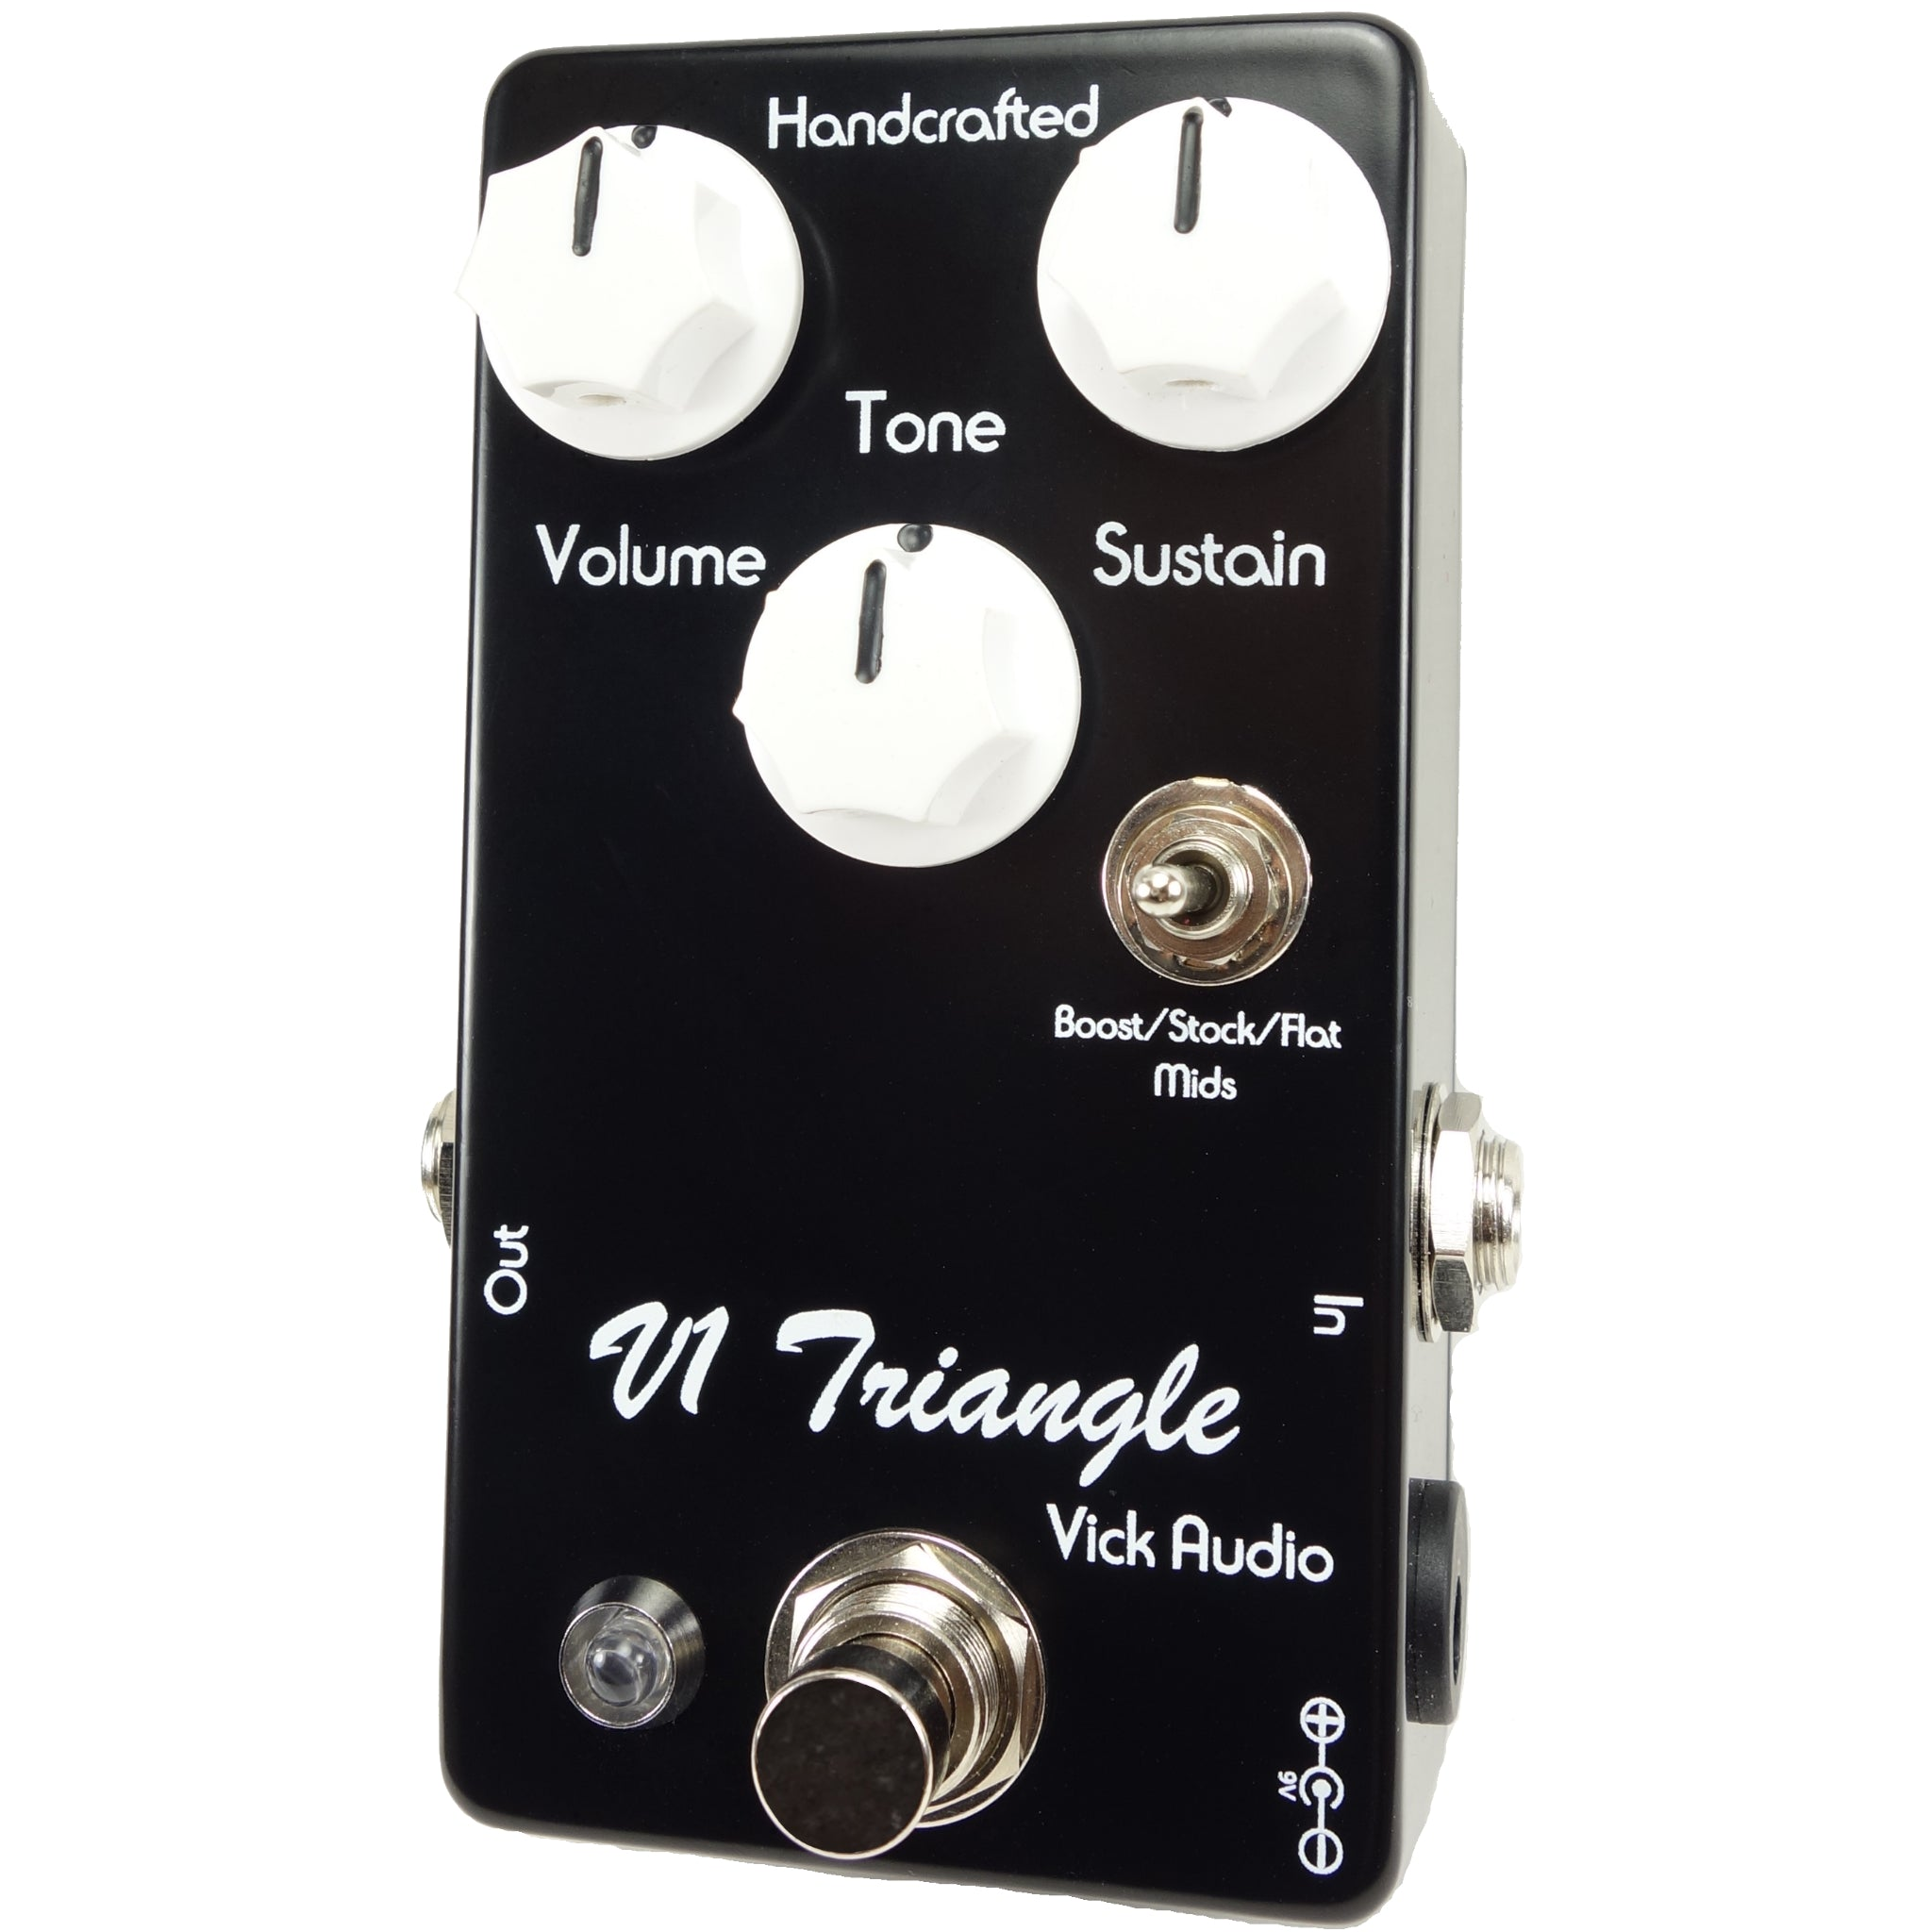 Vick Audio V1 Triangle Fuzz